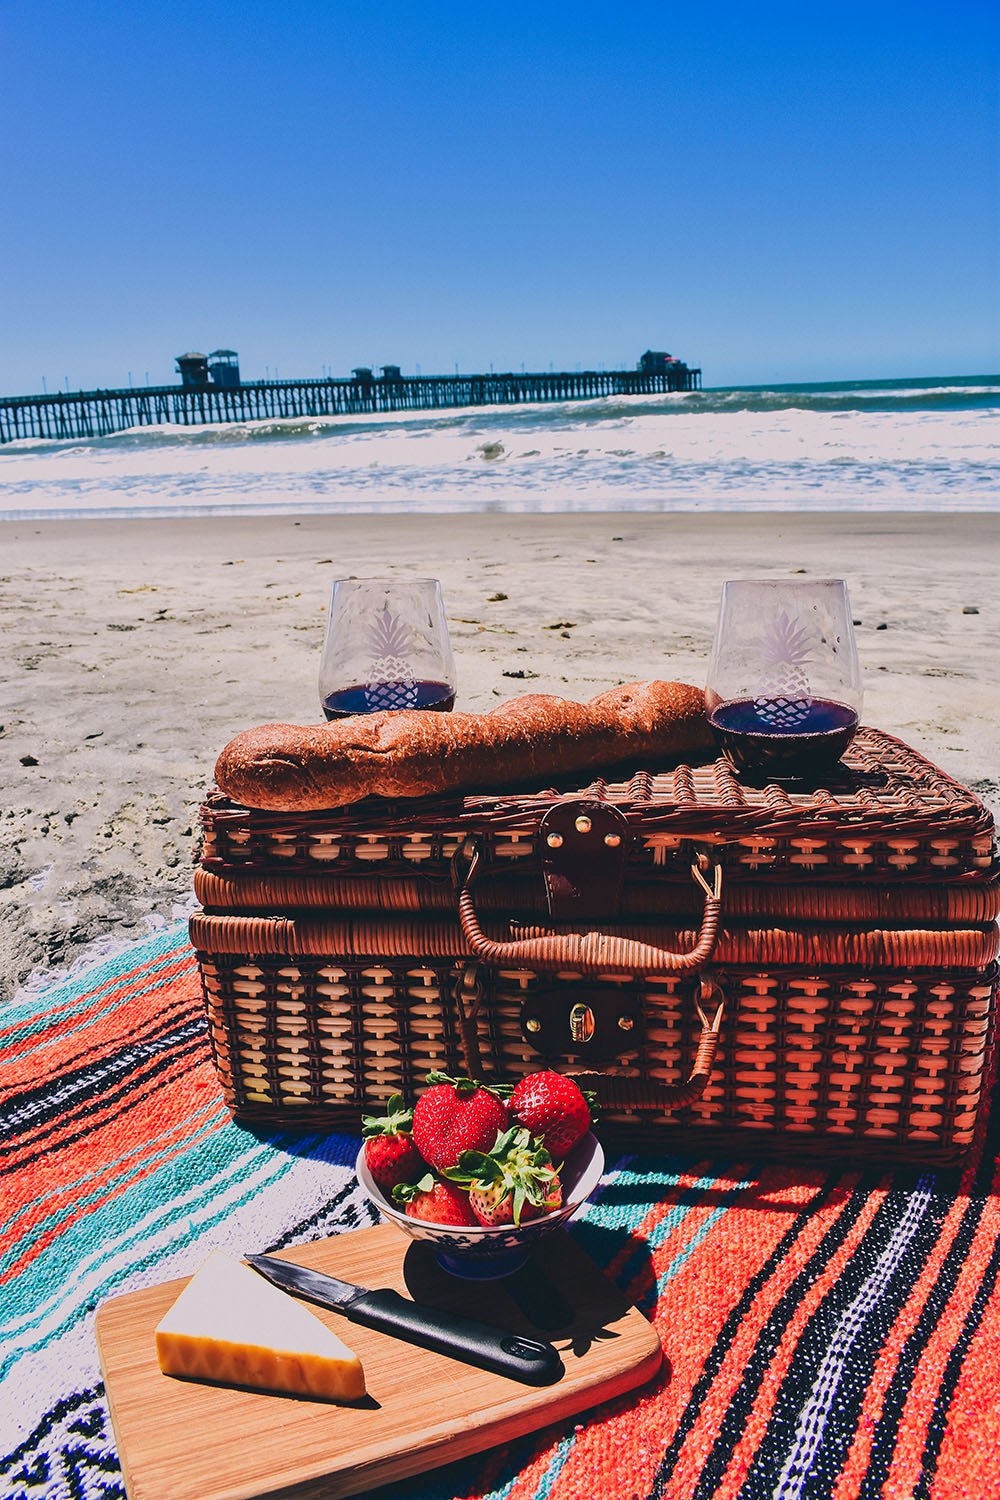 What would summer be with out a little summer lovin? Treat your other half to a romantic outdoor picnic for two. We love a picnic on the beach, basking in the warm sunshine. A good bottle of vino and a few munchies are all you need for a romantic beach rendezvous.